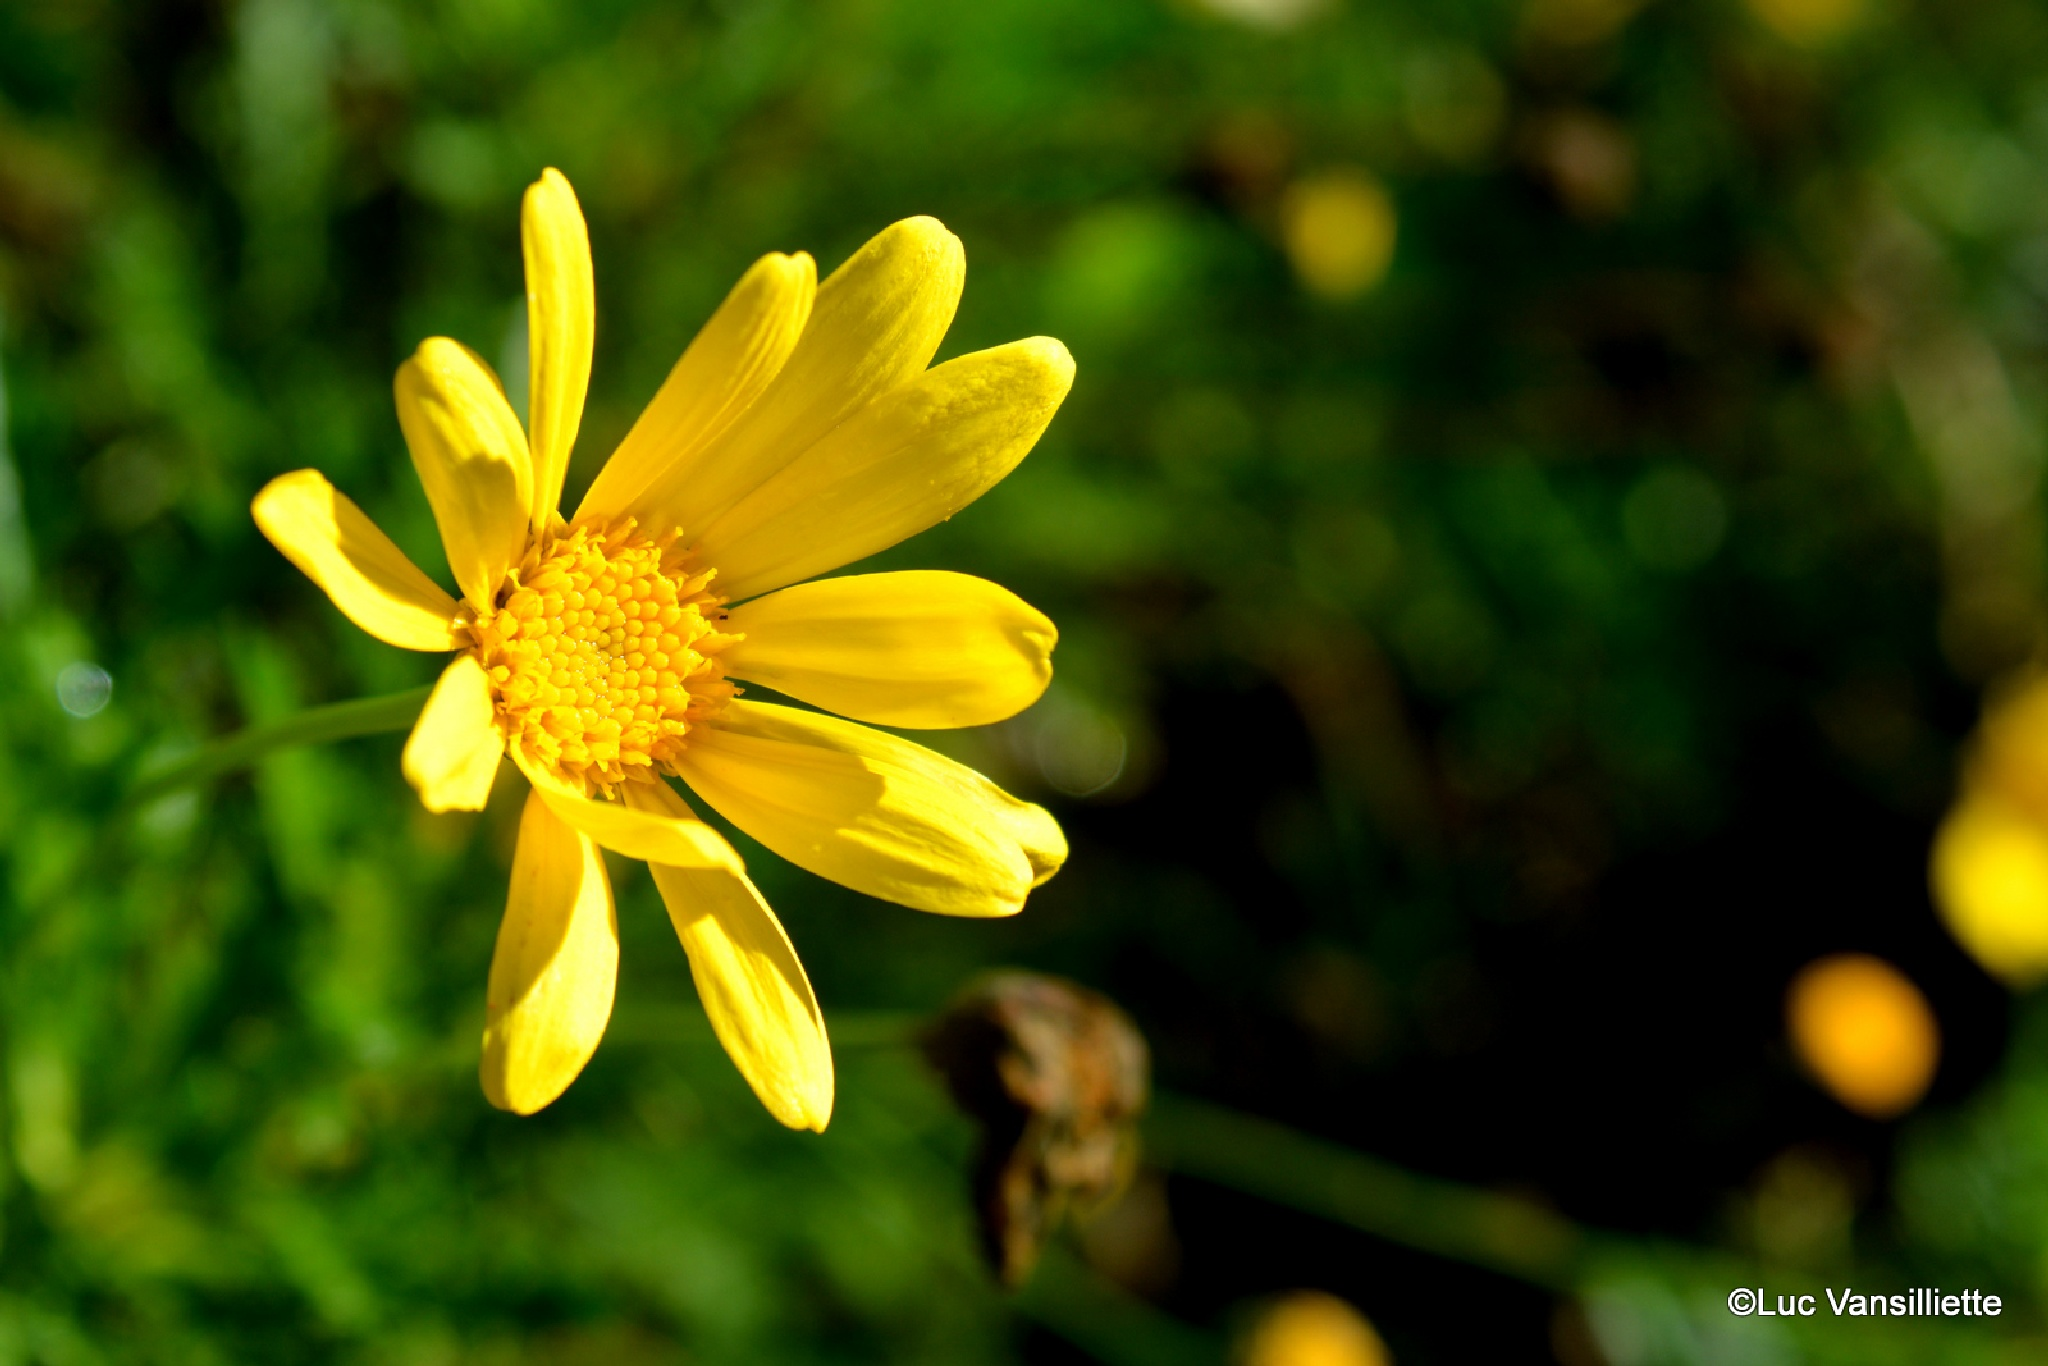 A little flower in the sun to brighten up a gloomy autumn evening by Luc Vansilliette